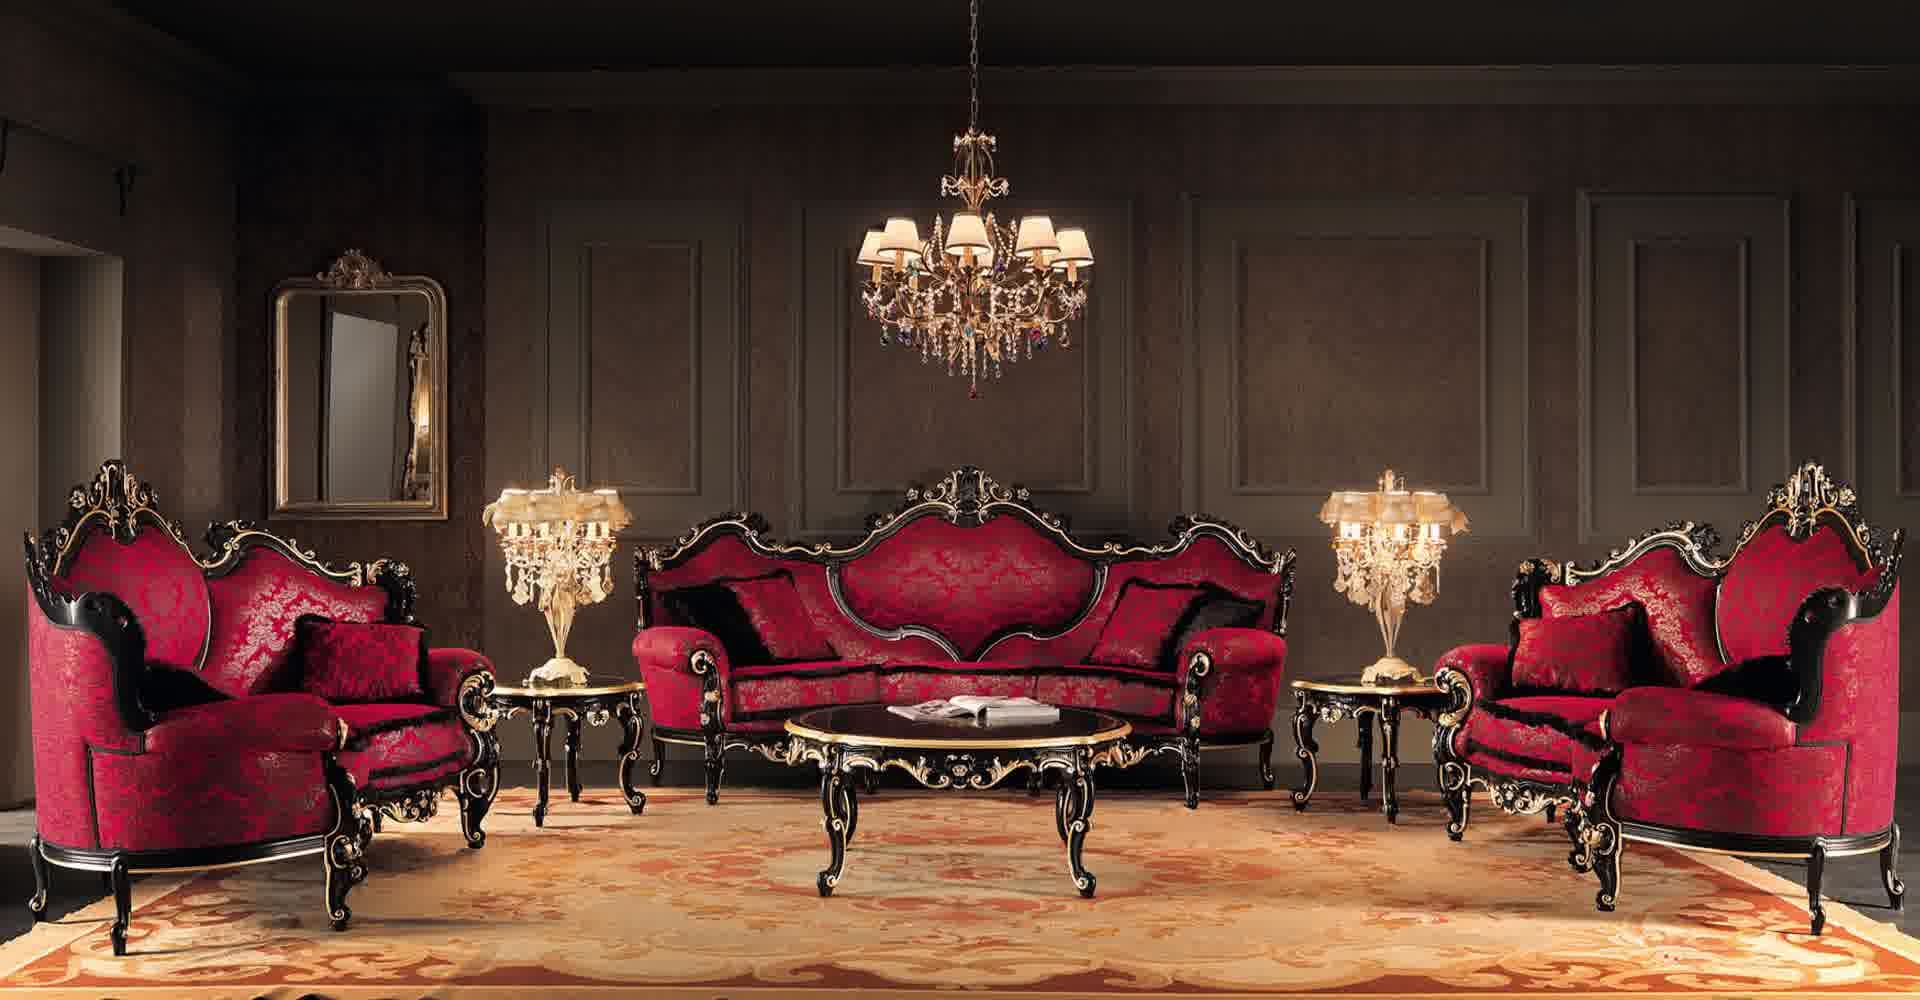 high end living room furniture. living room salotto italiano high end furniture  inspiring Italian Classic Living Room Design with Expensive Red Sofa My